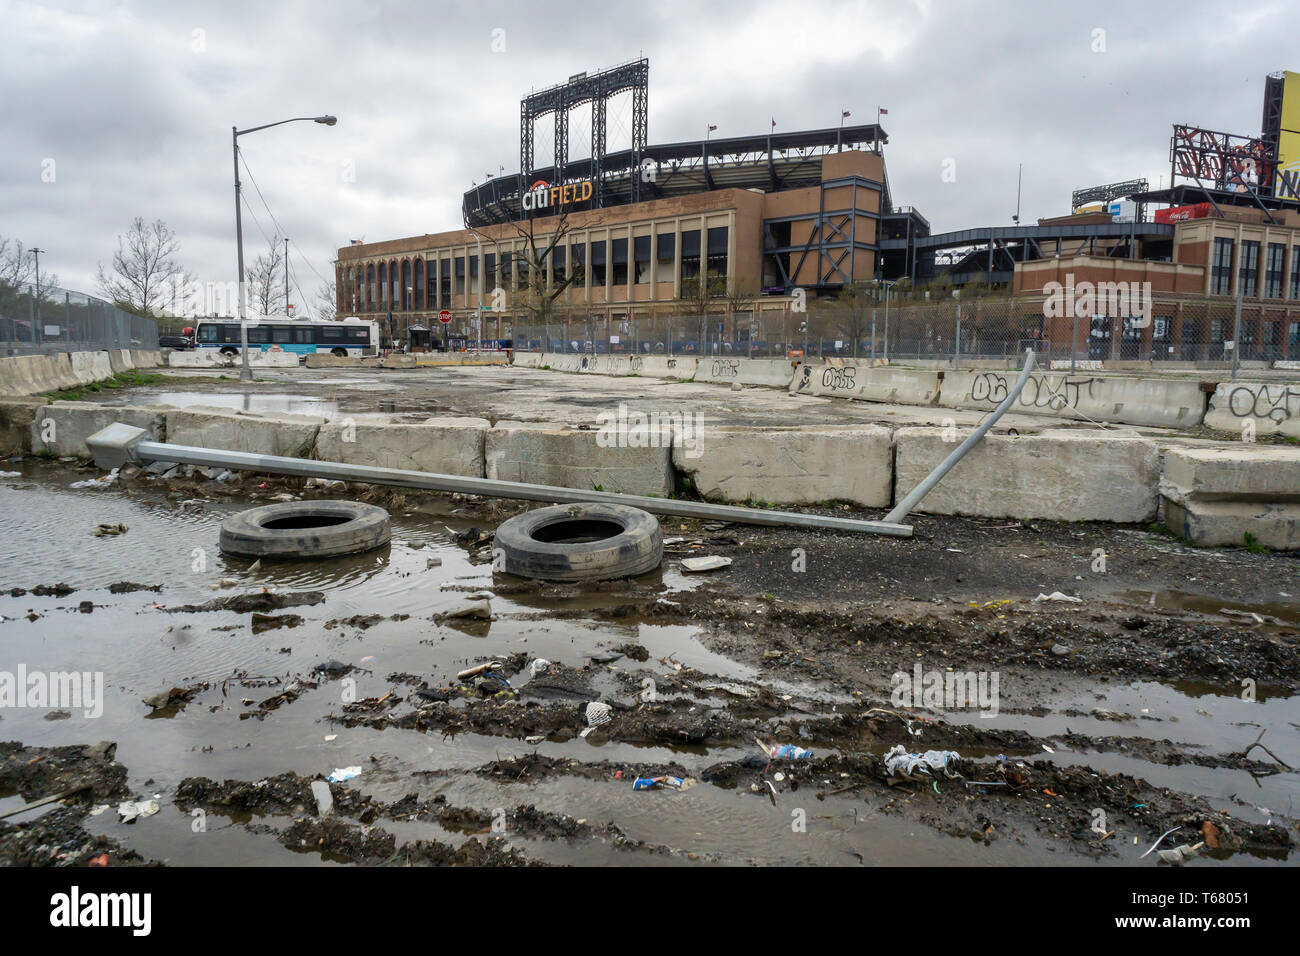 In the shadow of CitiField the automobile repair shops of Willets Point in the borough of Queens in New York are seen on Saturday, April 20, 2019. The city over the years evicted or bought out most of the businesses and the 61 acre area, called the 'Iron Triangle', an industrial area servicing car owners for decades, has few remaining repair shops (© Richard B. Levine) - Stock Image